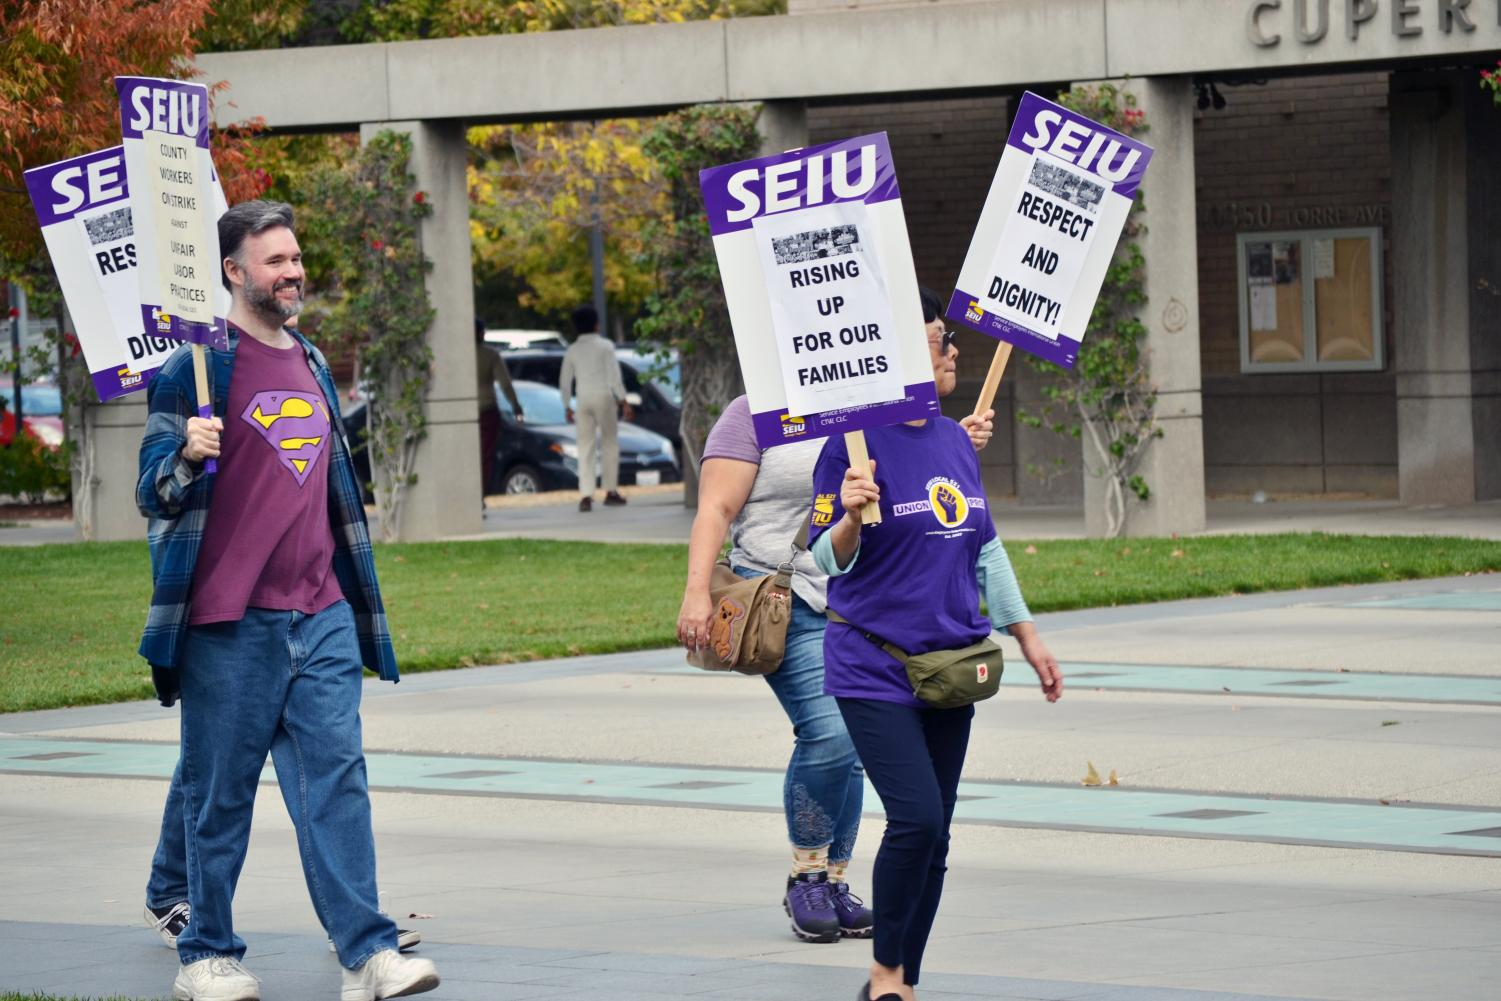 Carrying picket signs and wearing purple shirts that said